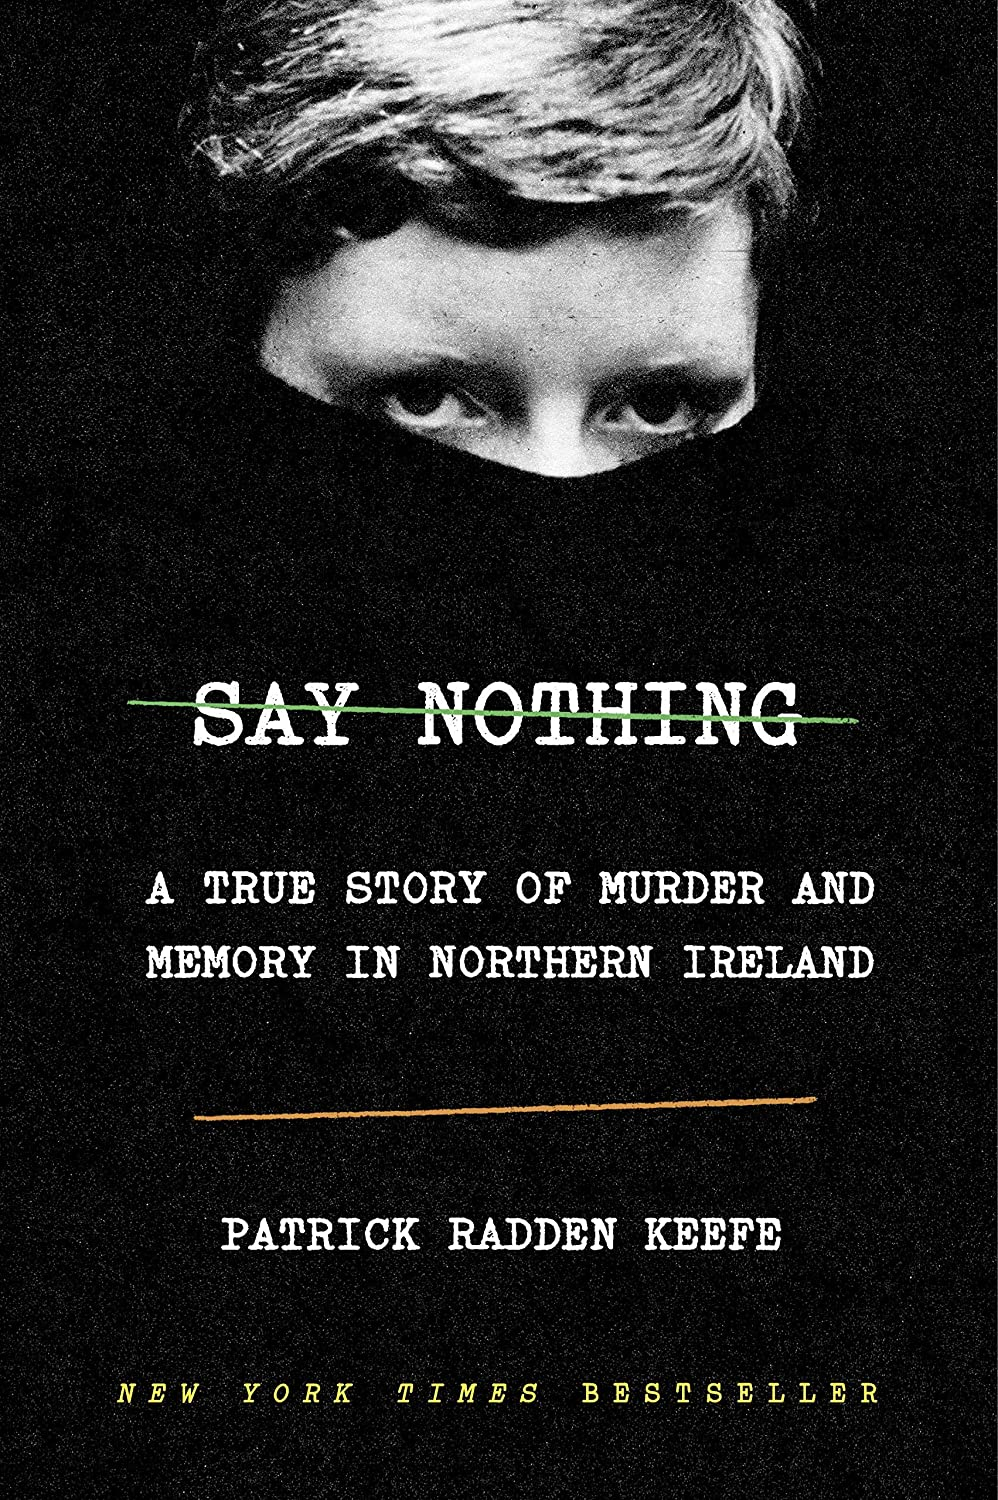 Amazon.com : [Patrick Radden Keefe] Say Nothing: A True Story of Murder and  Memory in Northern Ireland(Hardcover)【2019】 : Office Products